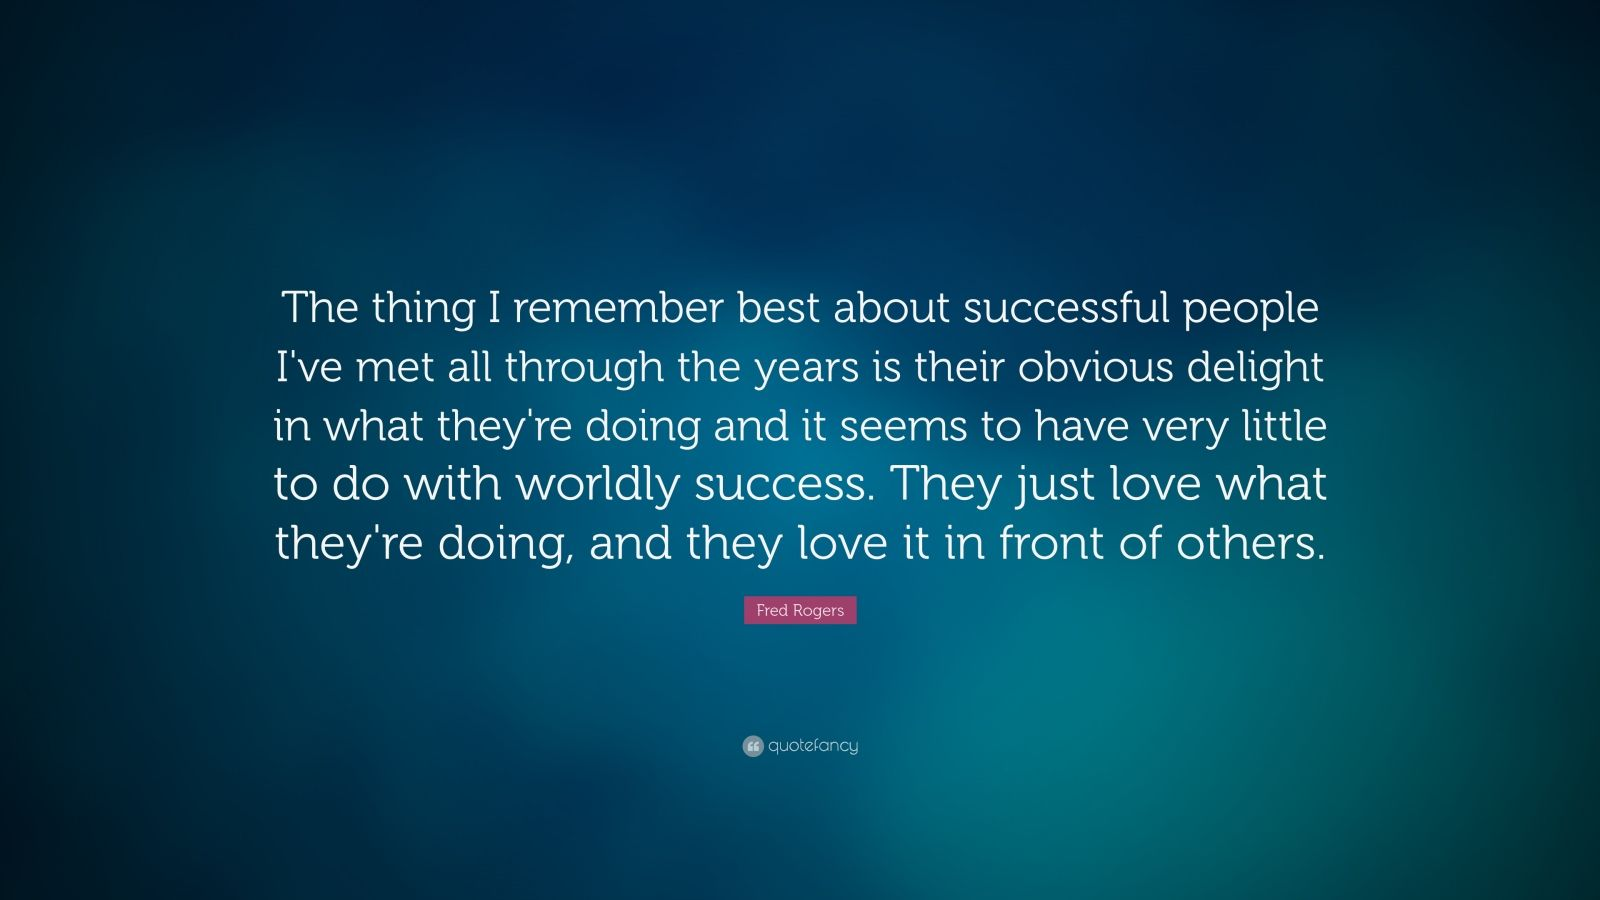 "Fred Rogers Quote: ""The thing I remember best about successful people I've met all through the years is their obvious delight in what they're doing and it seems to have very little to do with worldly success. They just love what they're doing, and they love it in front of others."""